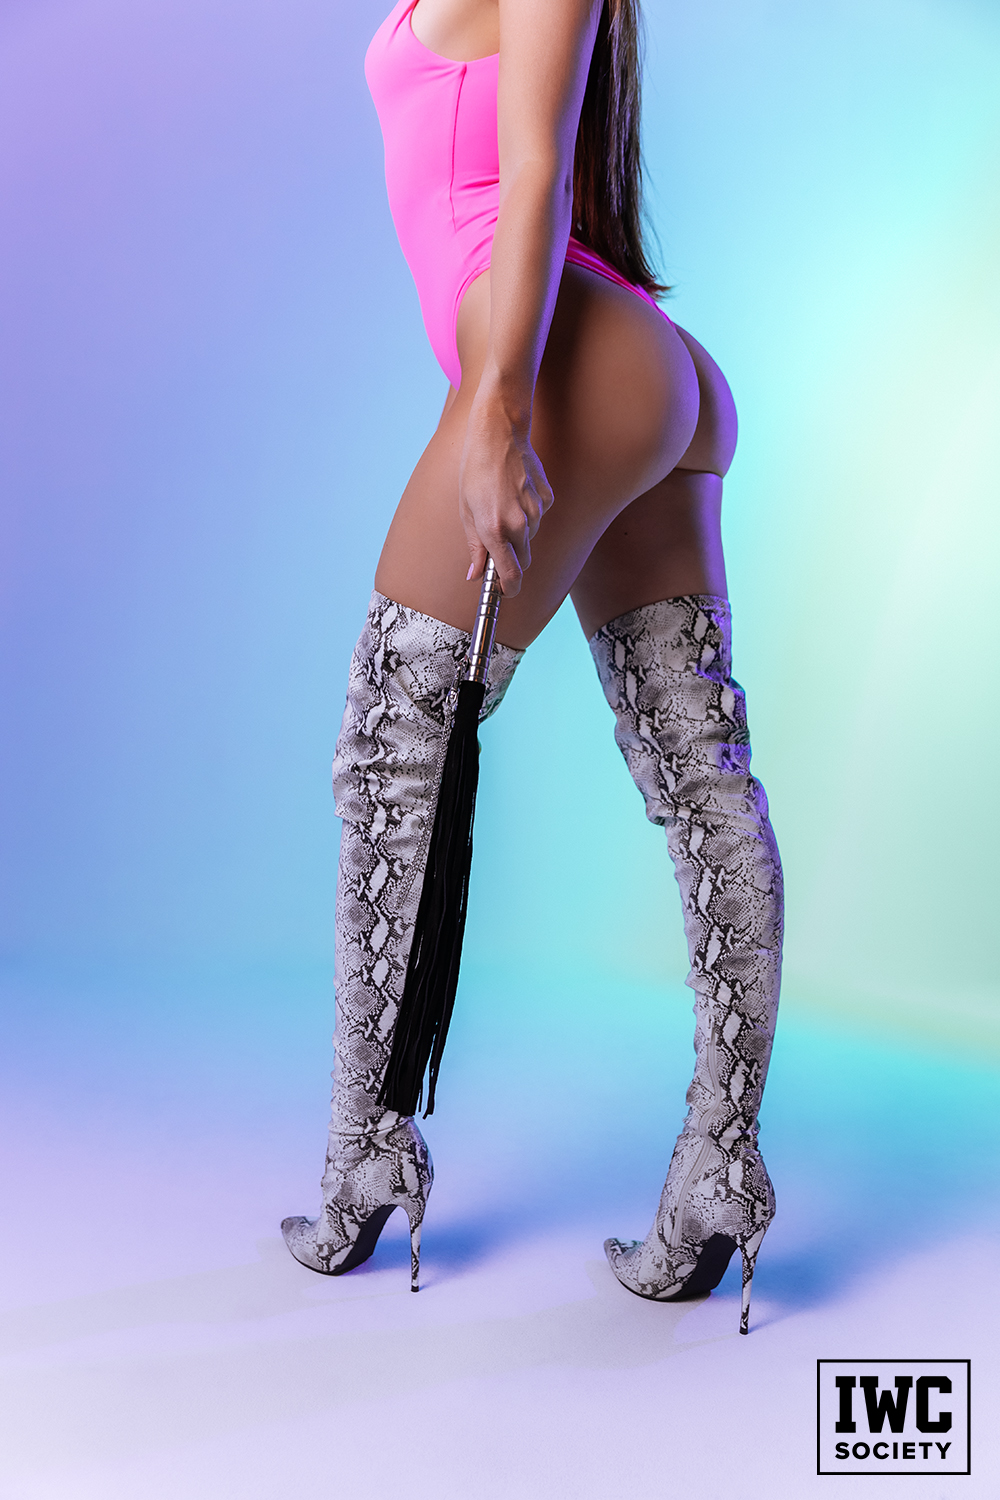 Thigh high snake boots with heels holding whip